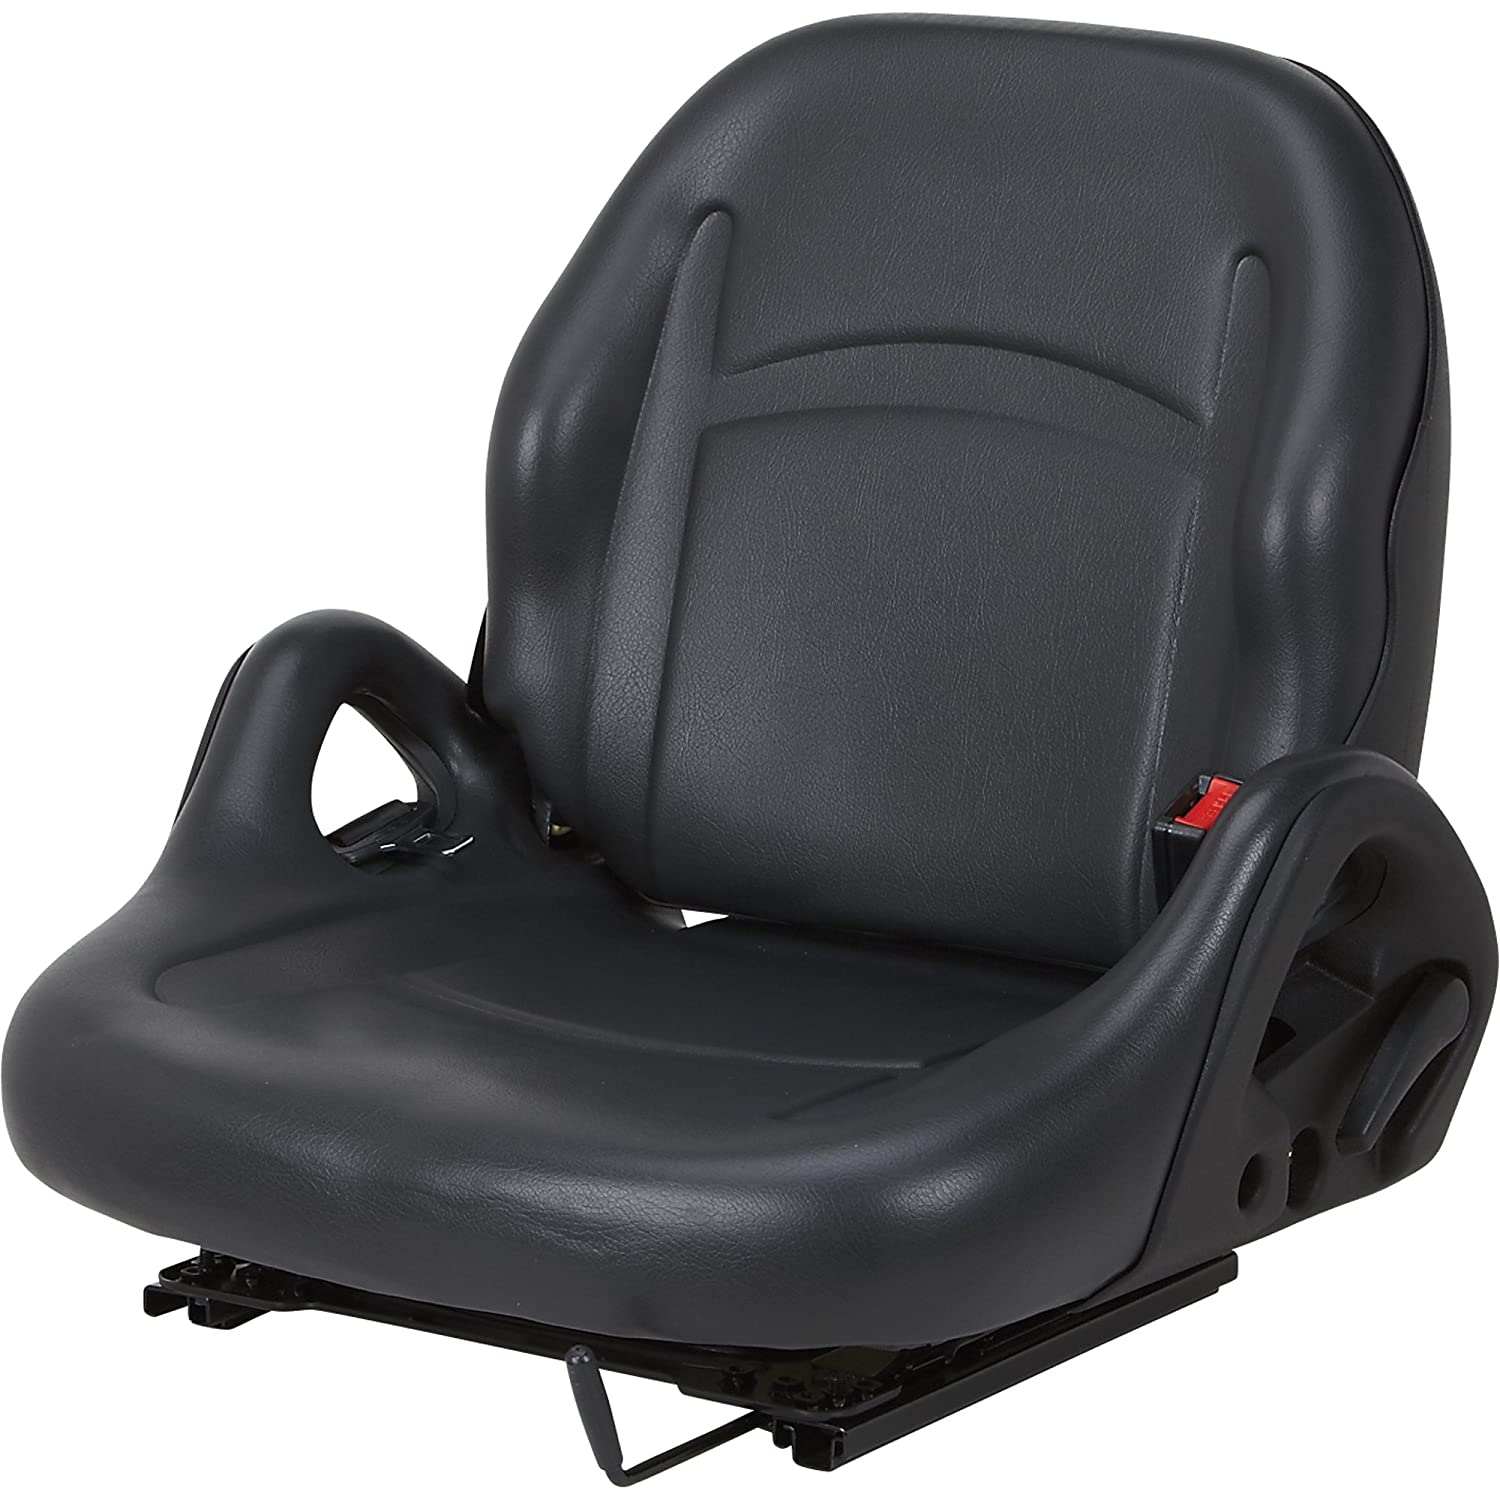 Amazon.com: K & M Universal Replacement Forklift Seat - Black, Model# 8001:  Home Improvement